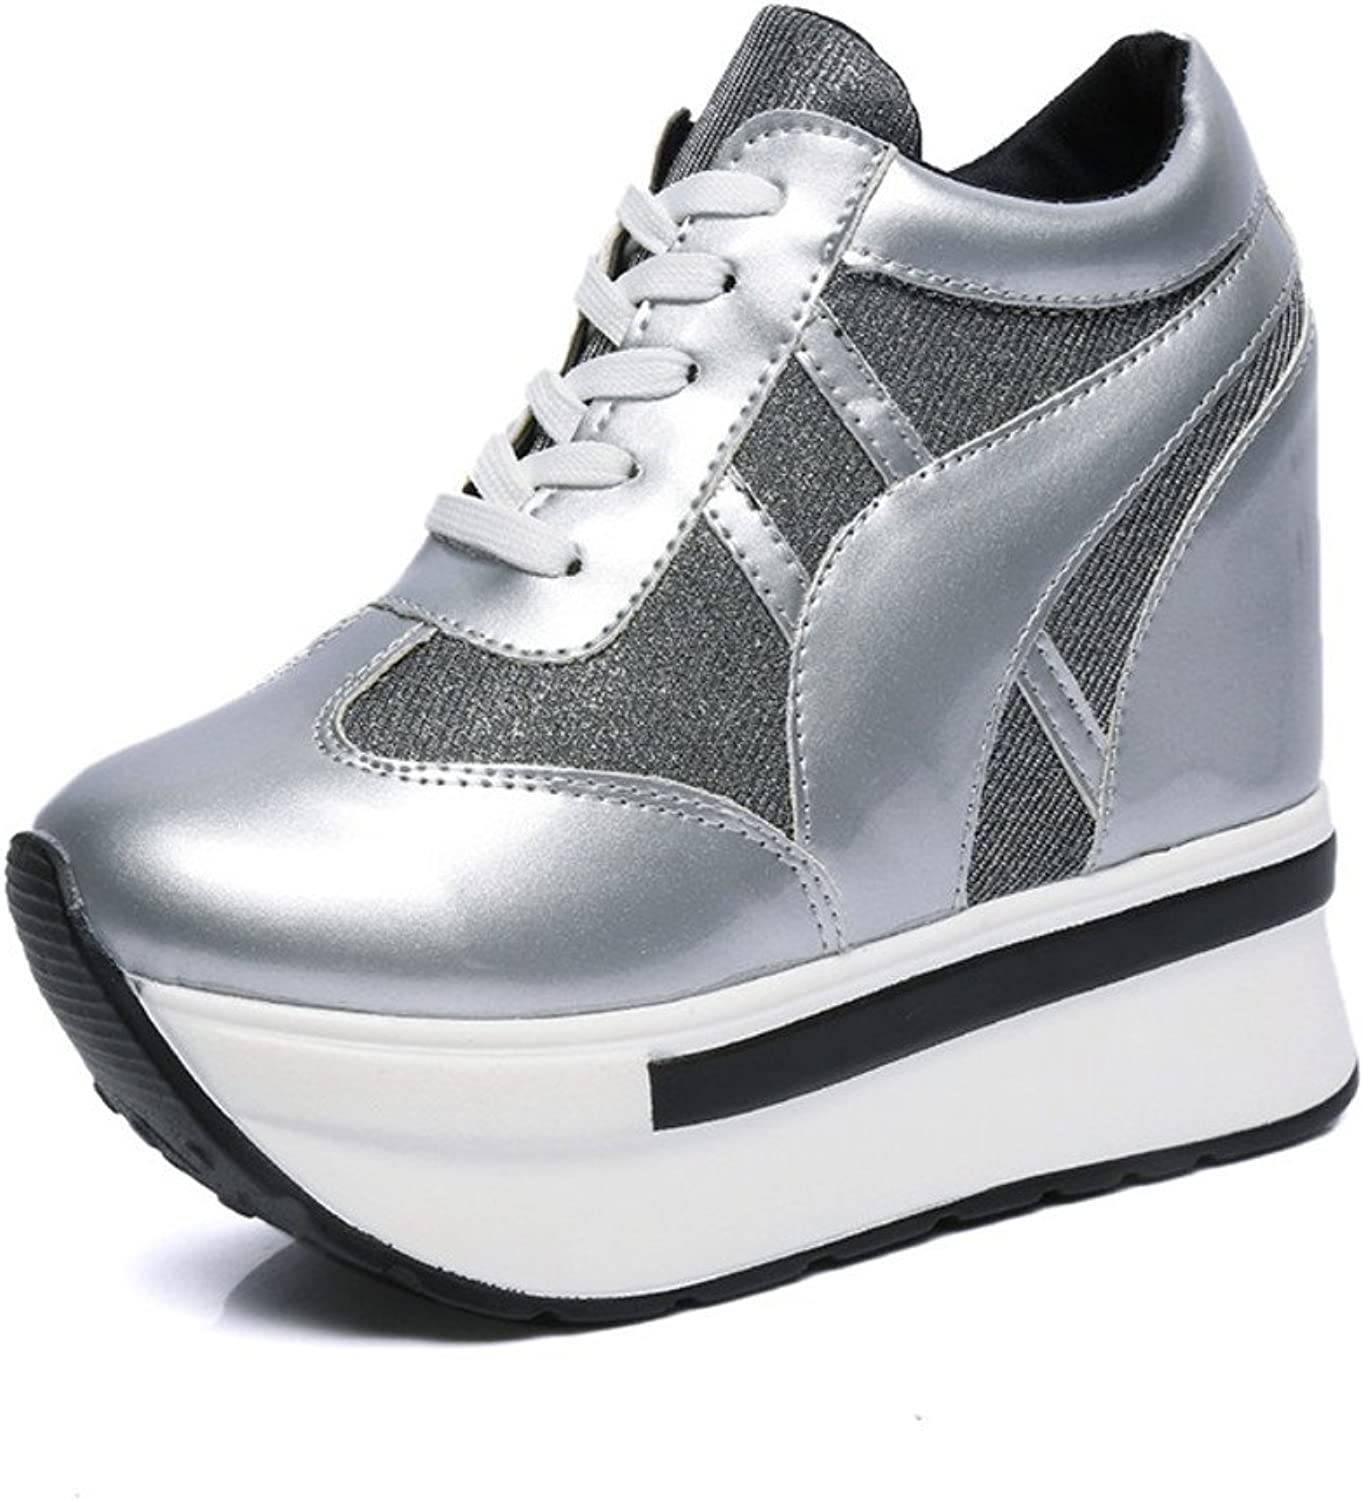 The Korean version of the super high heel high sneaker in the fall mesh breathable casual shoes with platform